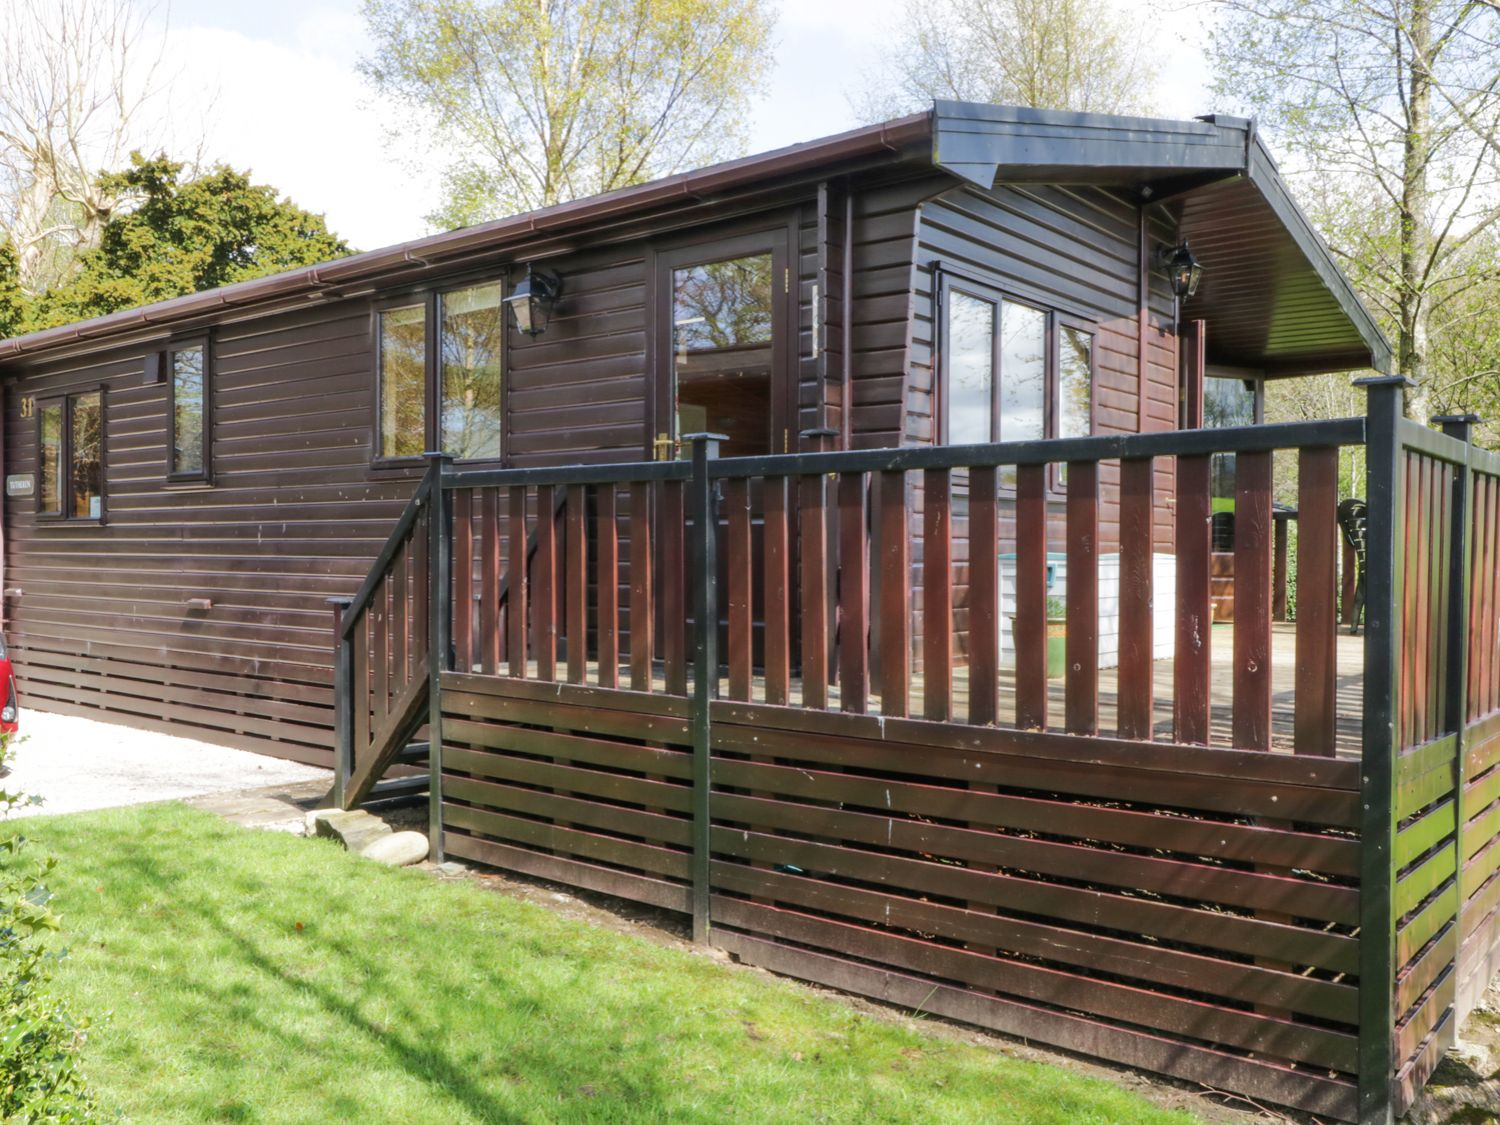 Lake District Lodges with Luxury Lodge Stays - View Now!